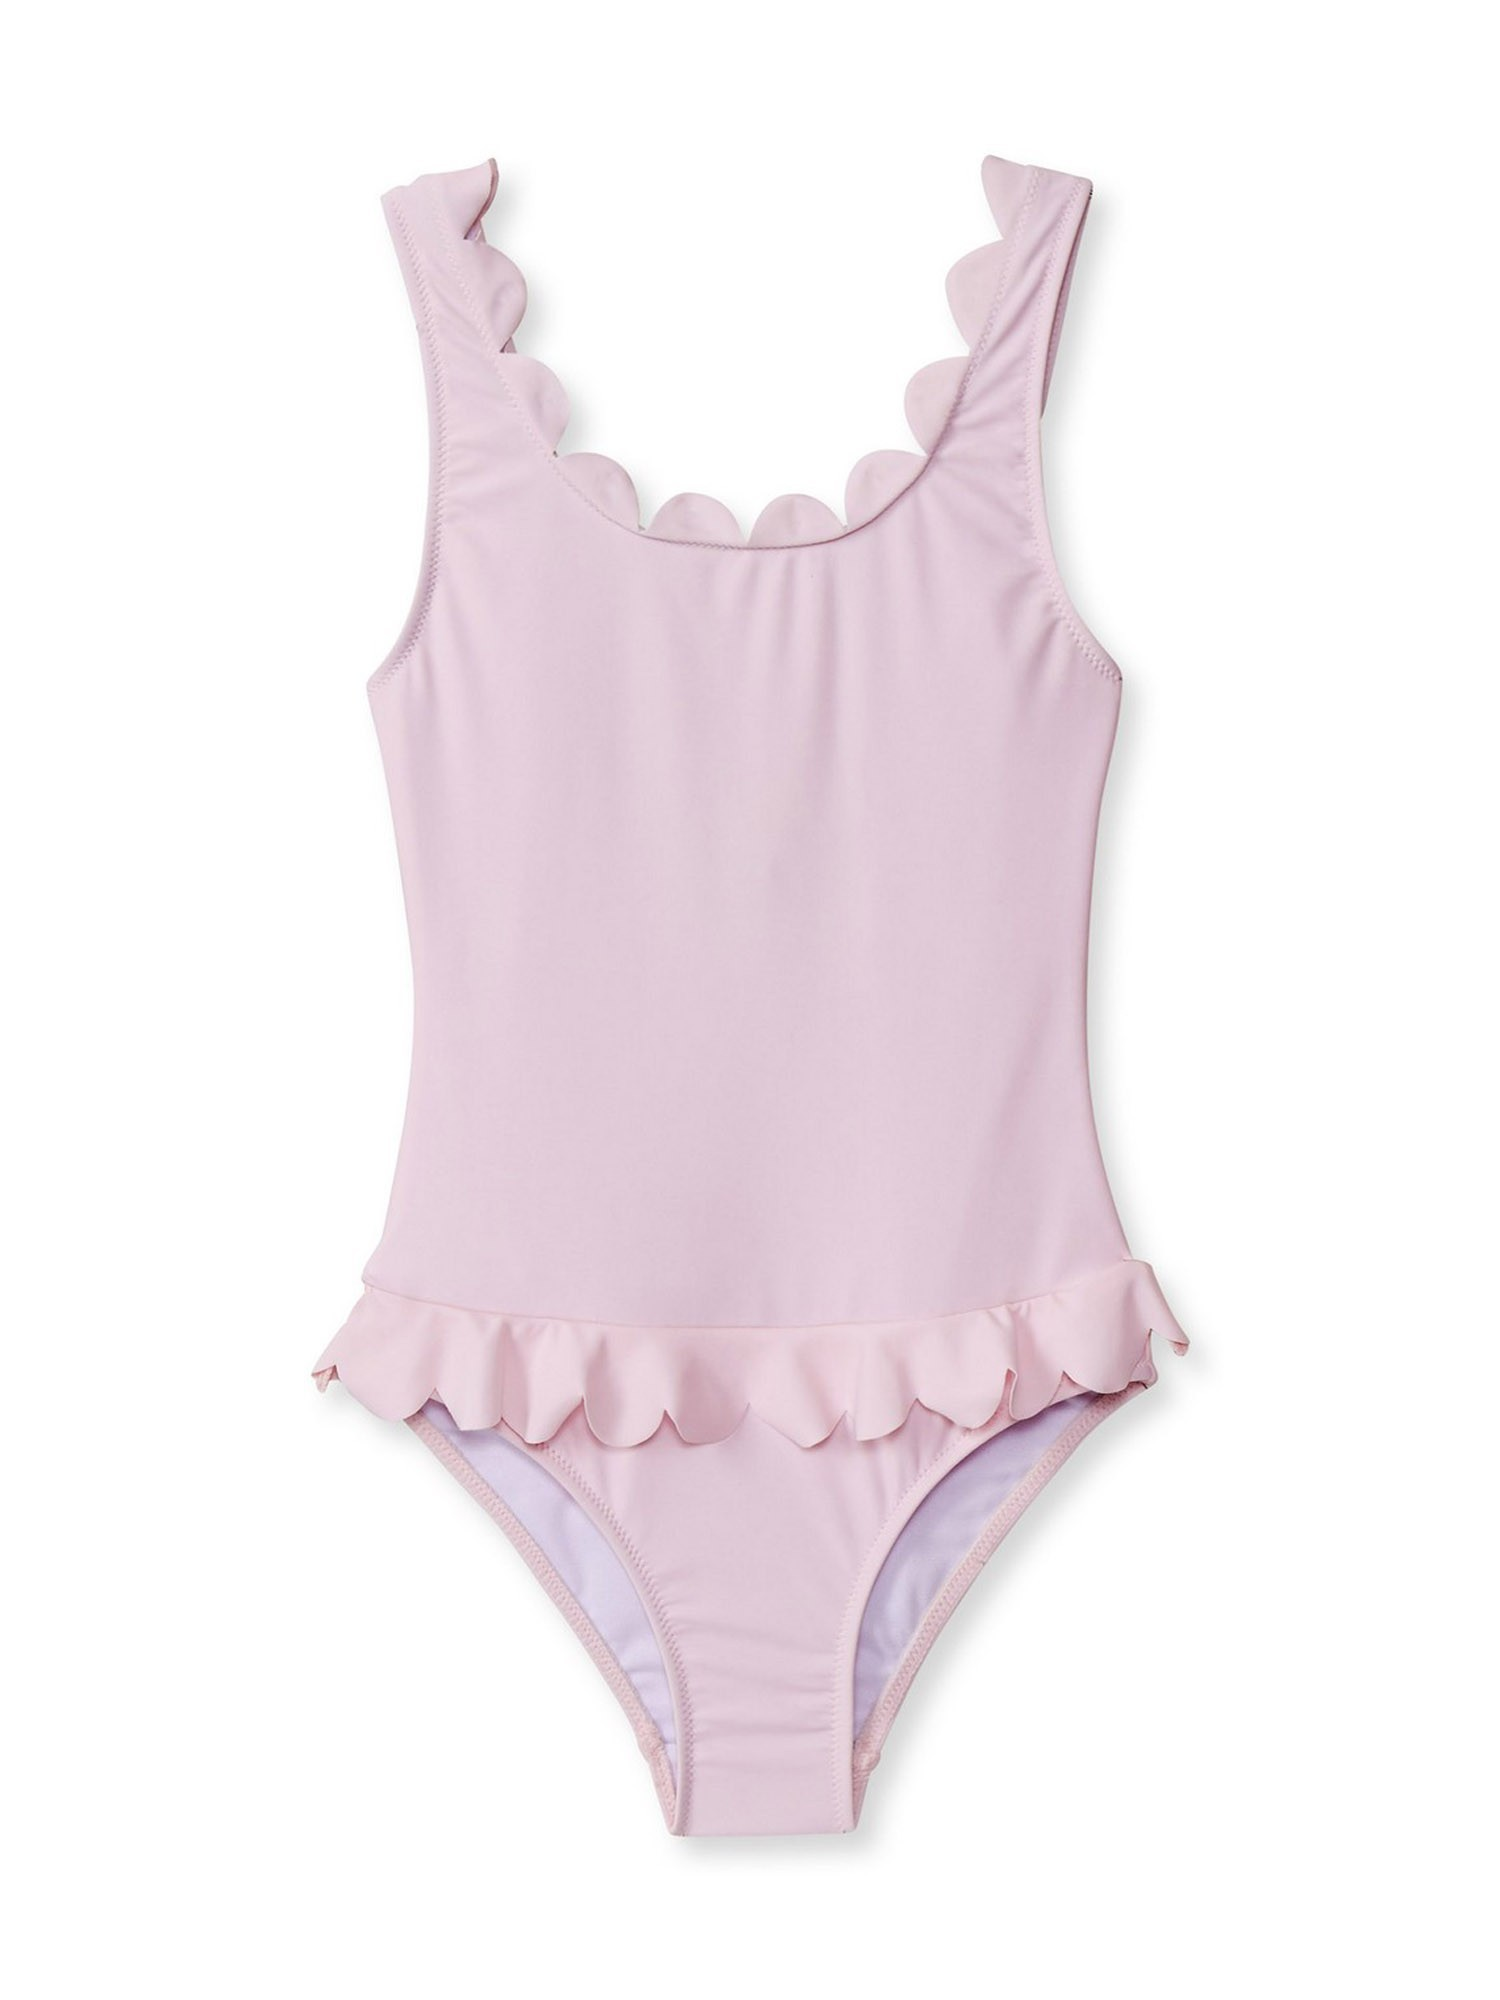 New With Tag Stella Cove One Piece Swim Suit 18 months